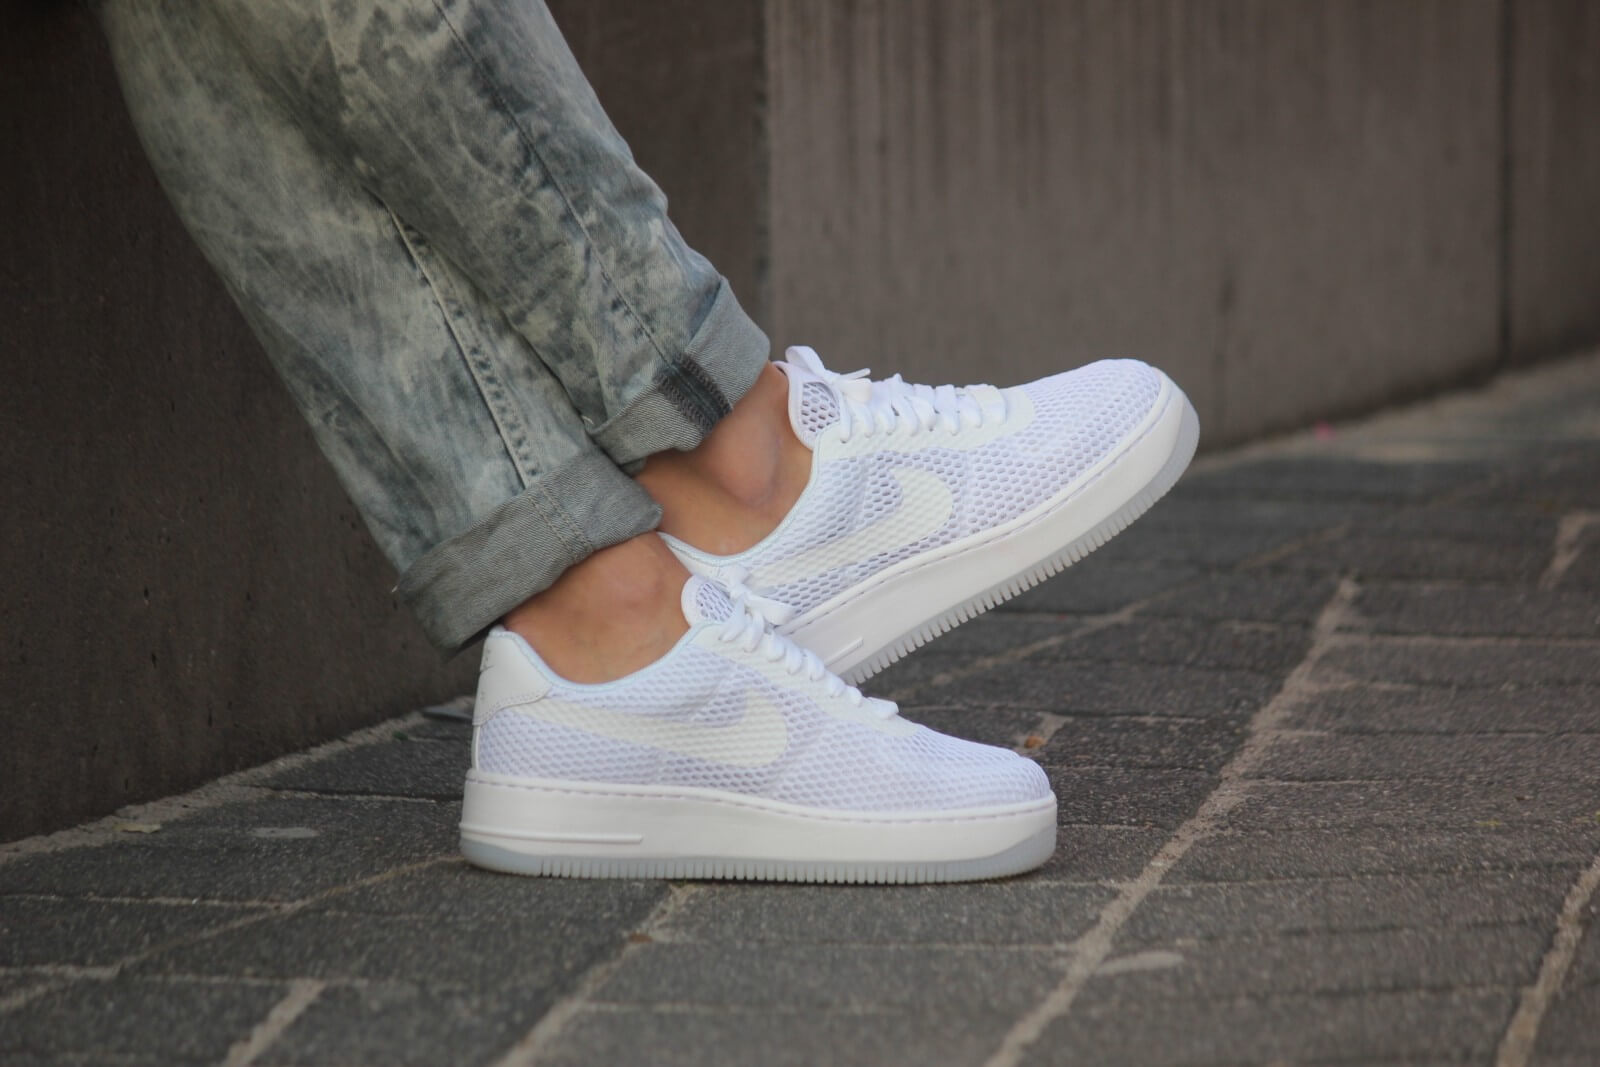 761df18ede9 ... Nike WMNS Air Force 1 Low Upstep BR White White - 833123-100 . ...